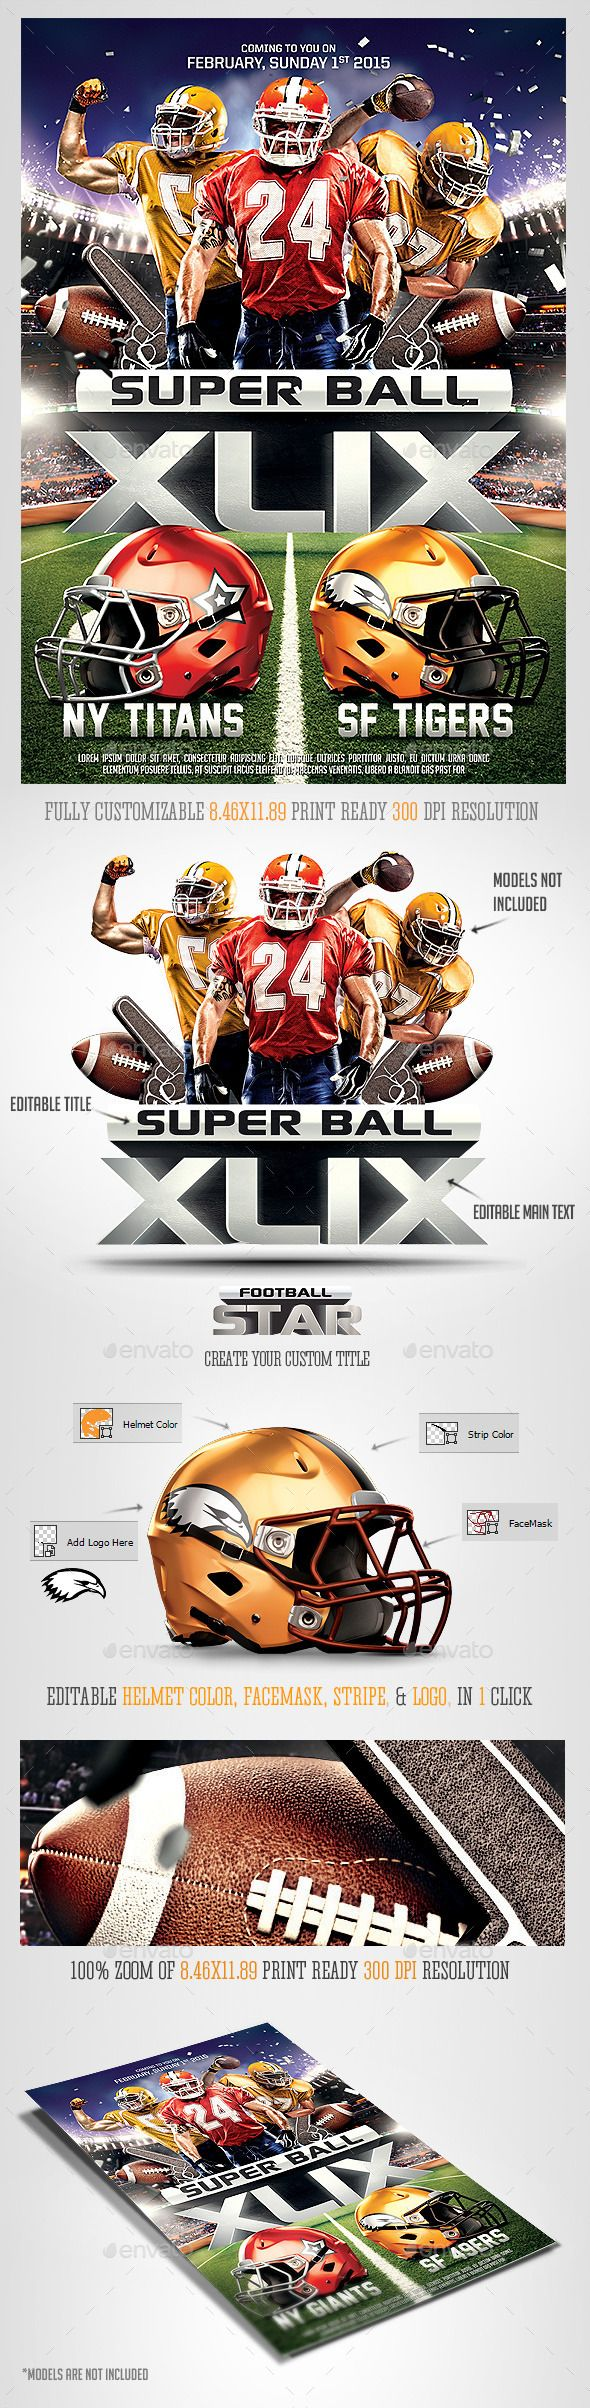 Super Ball Football Party Flyer Template | Party flyer